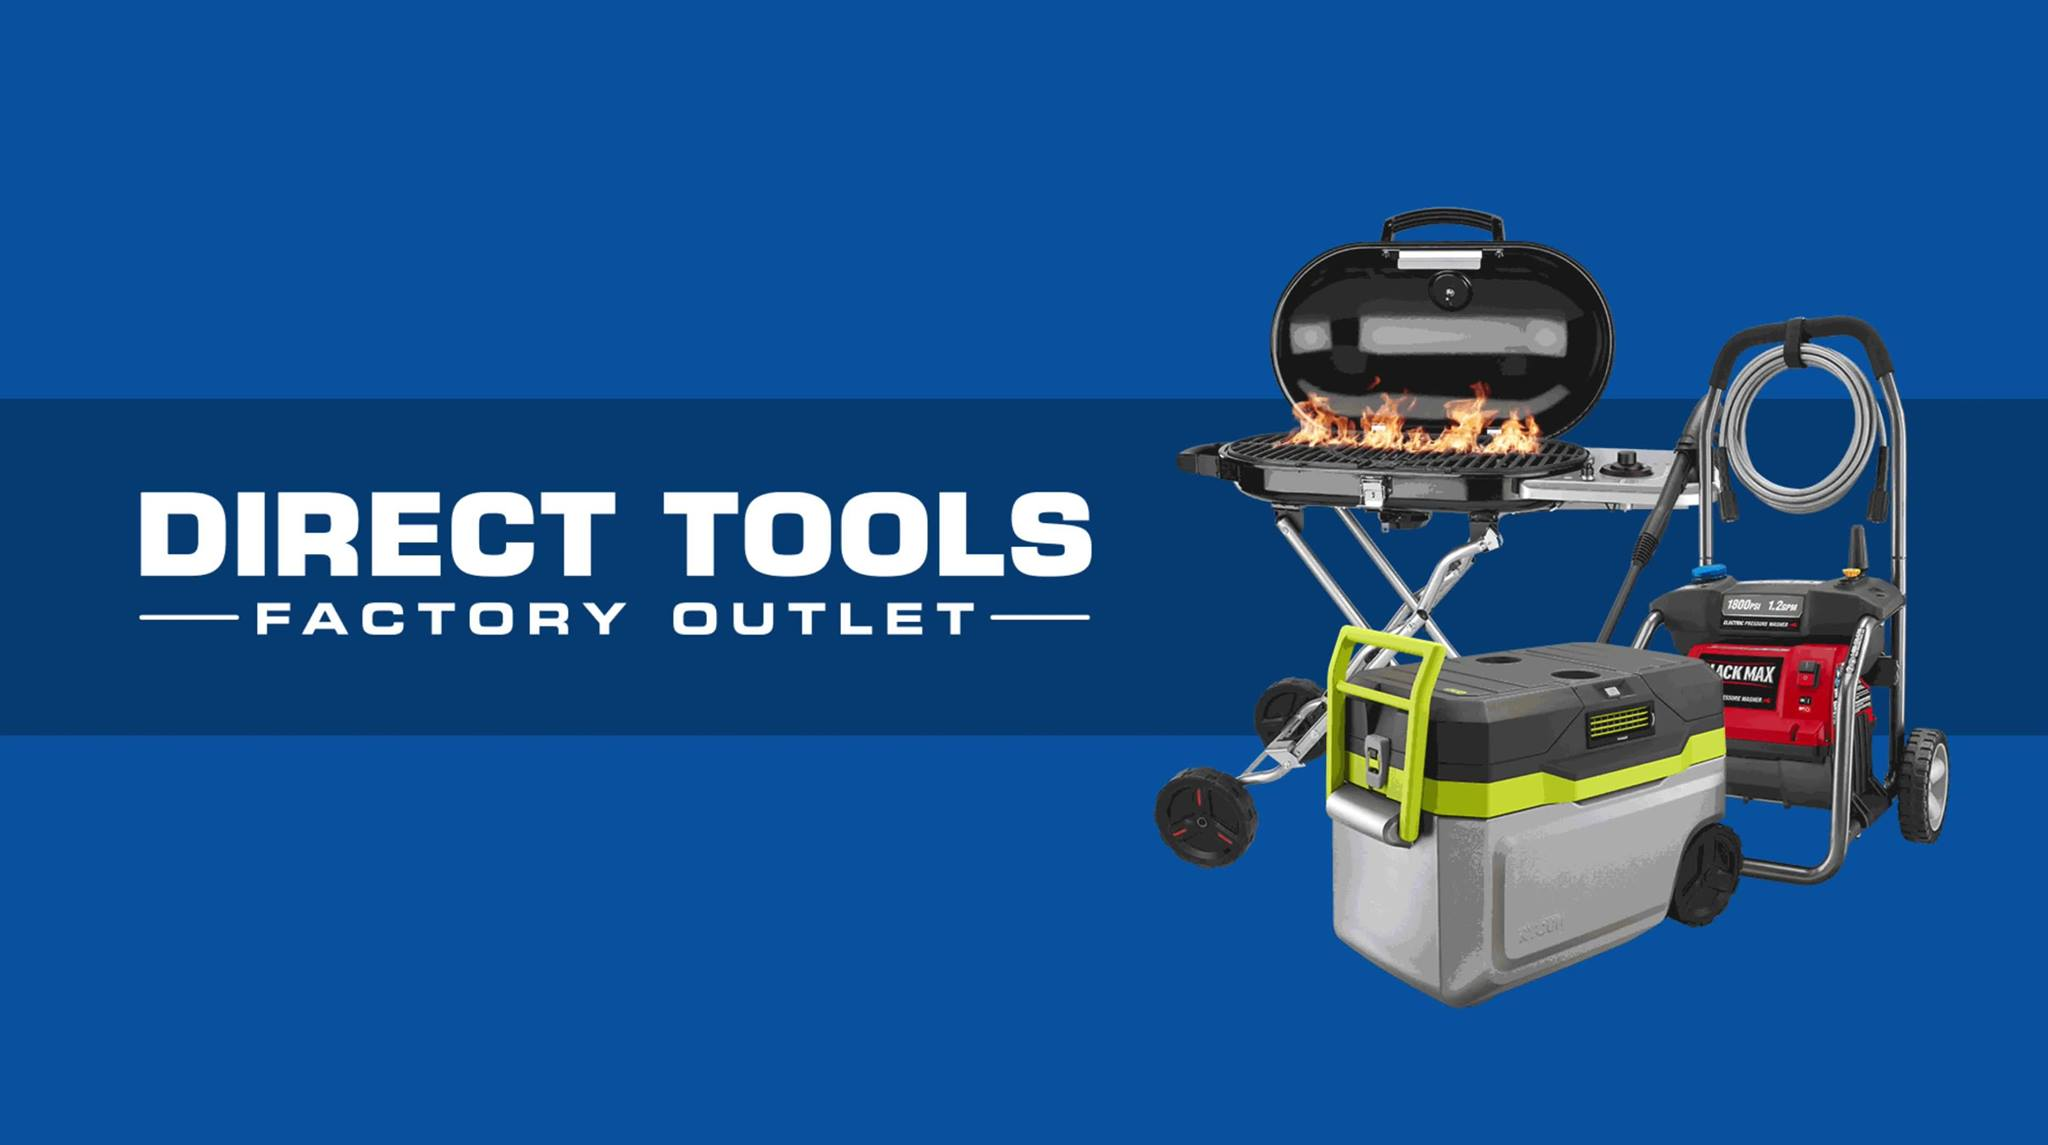 Direct Tools